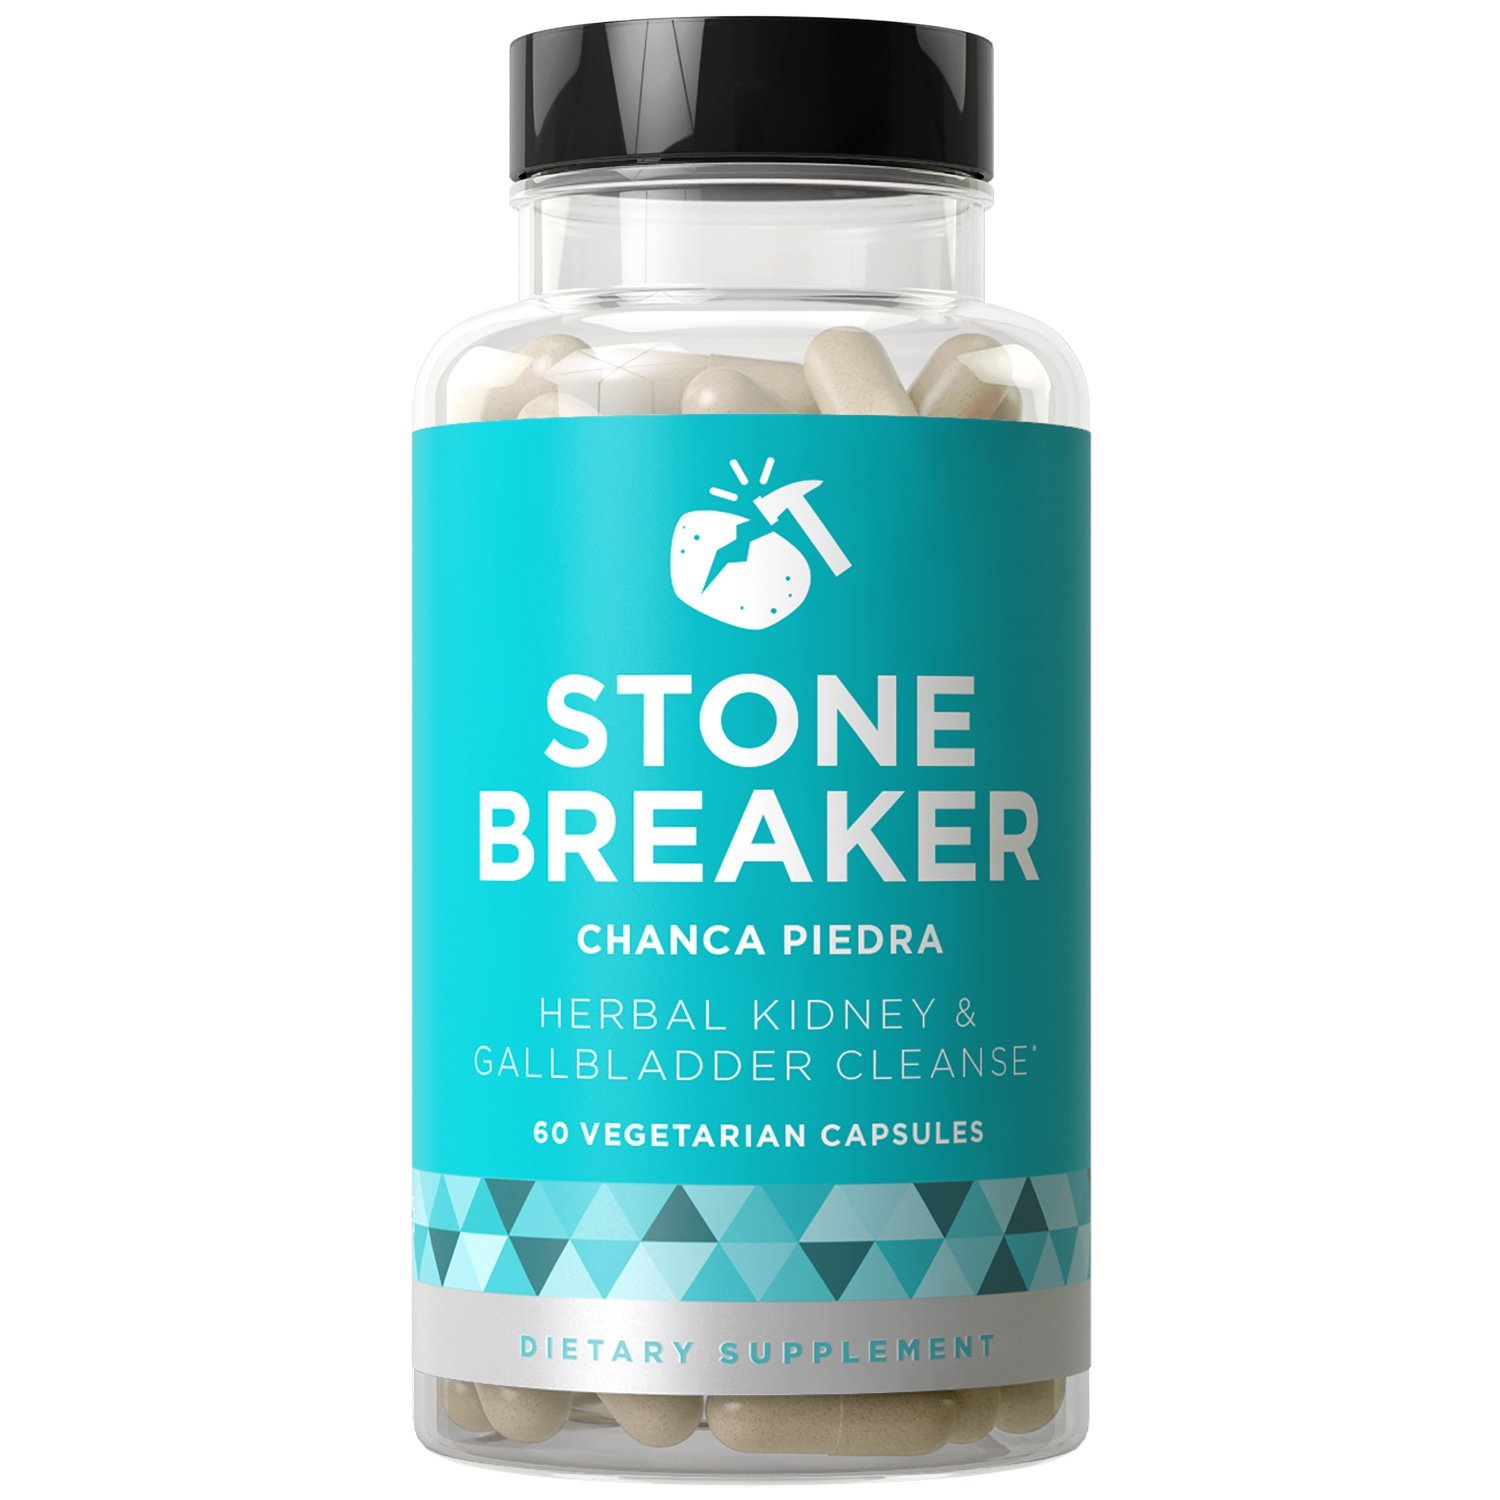 STONE BREAKER Chanca Piedra - Kidney Detoxifying Cleanse and Gallbladder Protection - Fact-acting Strength - Discomfort, Nausea, Urinary System - Hydrangea & Celery Seed - 60 Vegetarian Soft Capsules